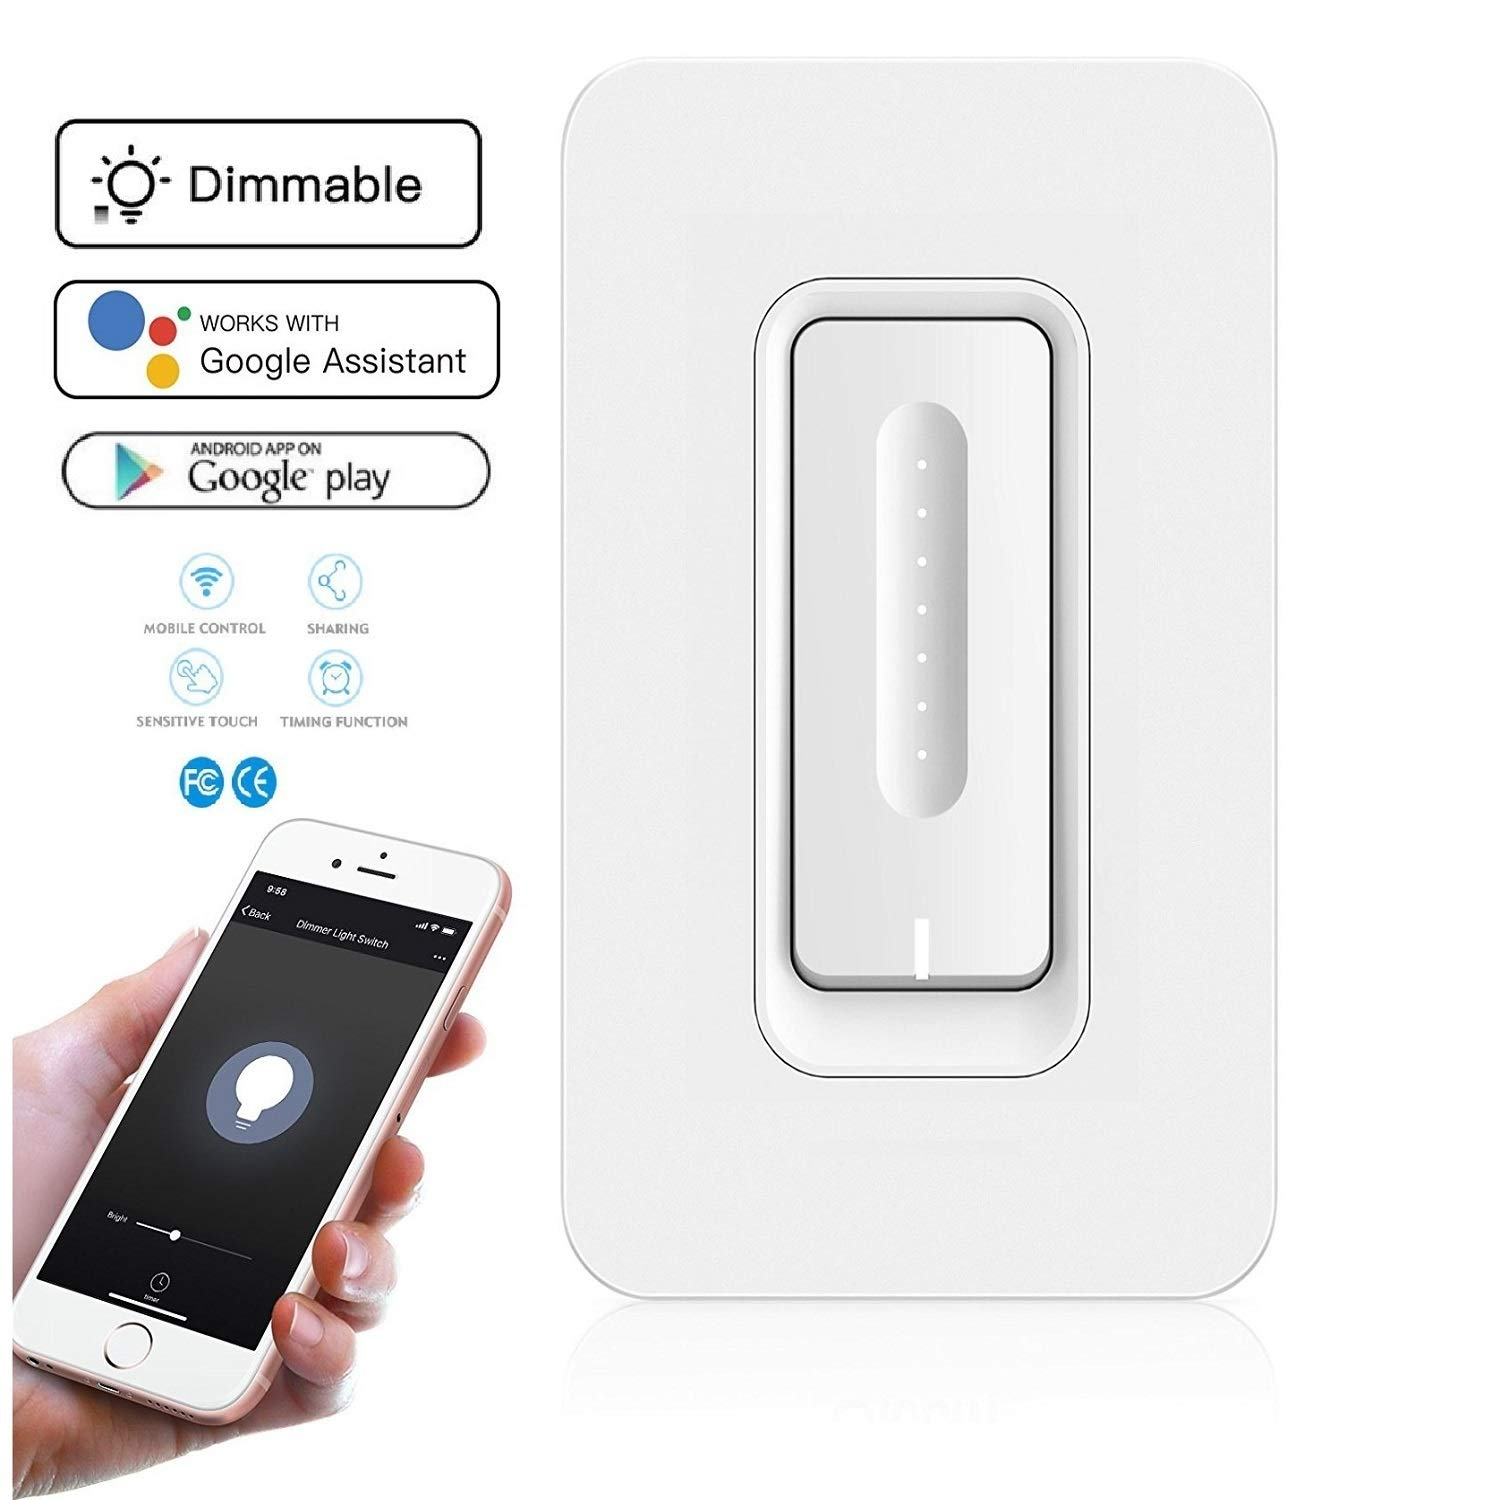 Smart Light Switch With Dimmer No Hub Required Control Lights Ceiling Fan Together Wiring A Ground From Phone Via Wi Fi Has Timer Function Your Fixtures Anywhere